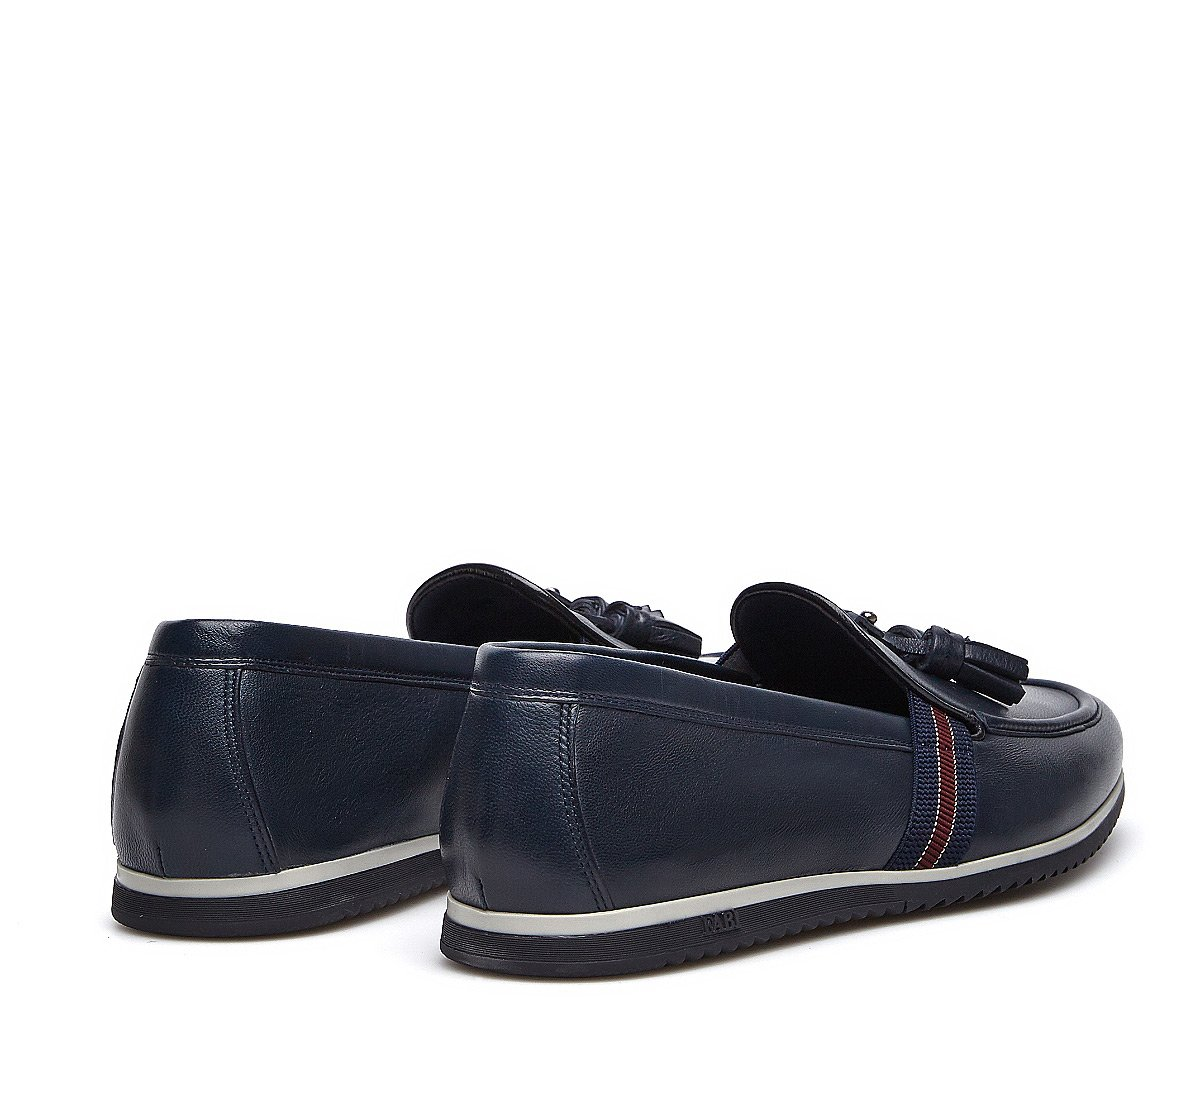 Sporty nappa leather moccasins